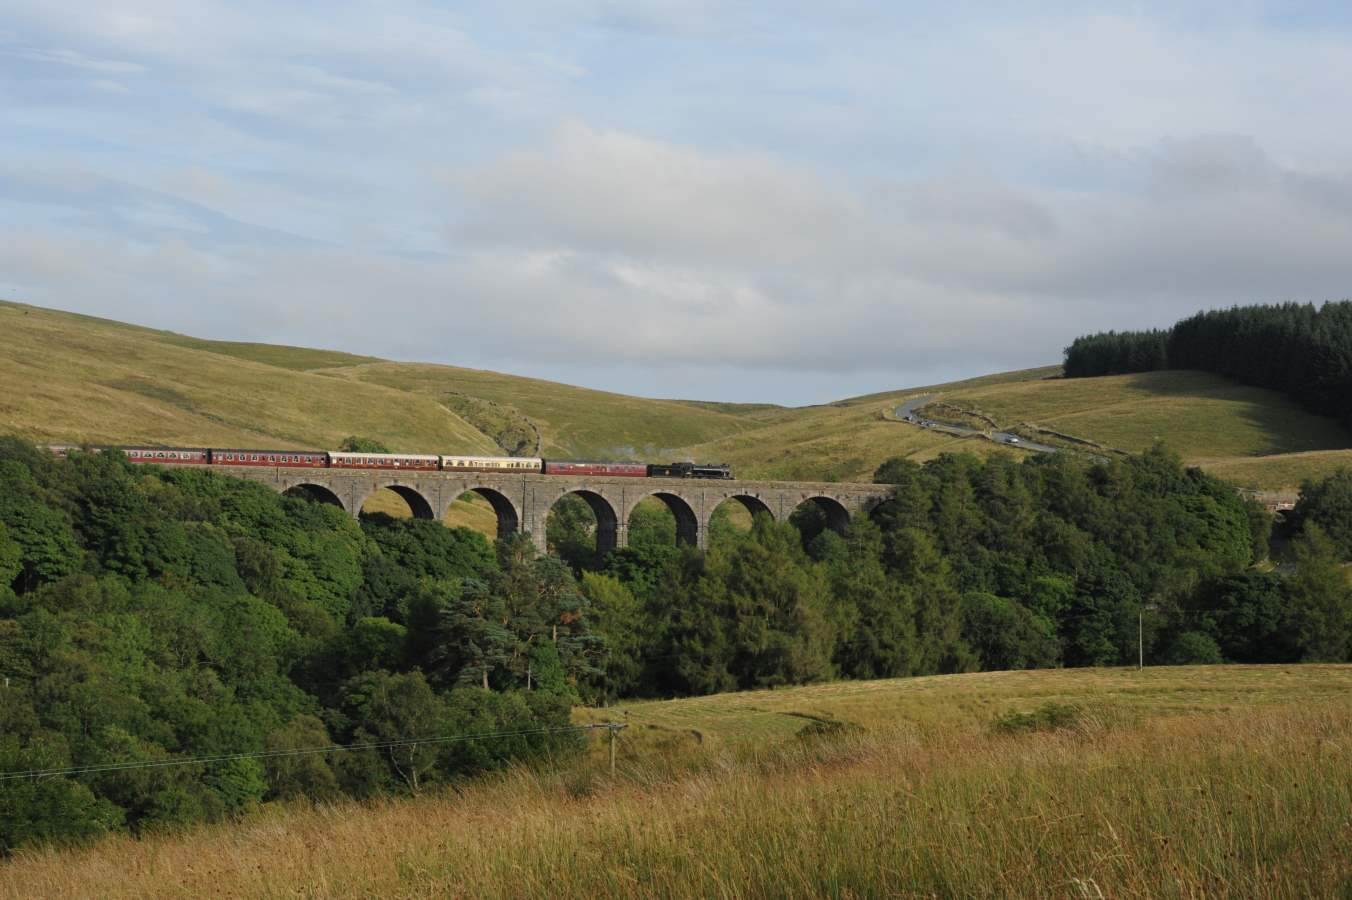 The Viaducts On The Carlisle To Settle Railway Visit Cumbria